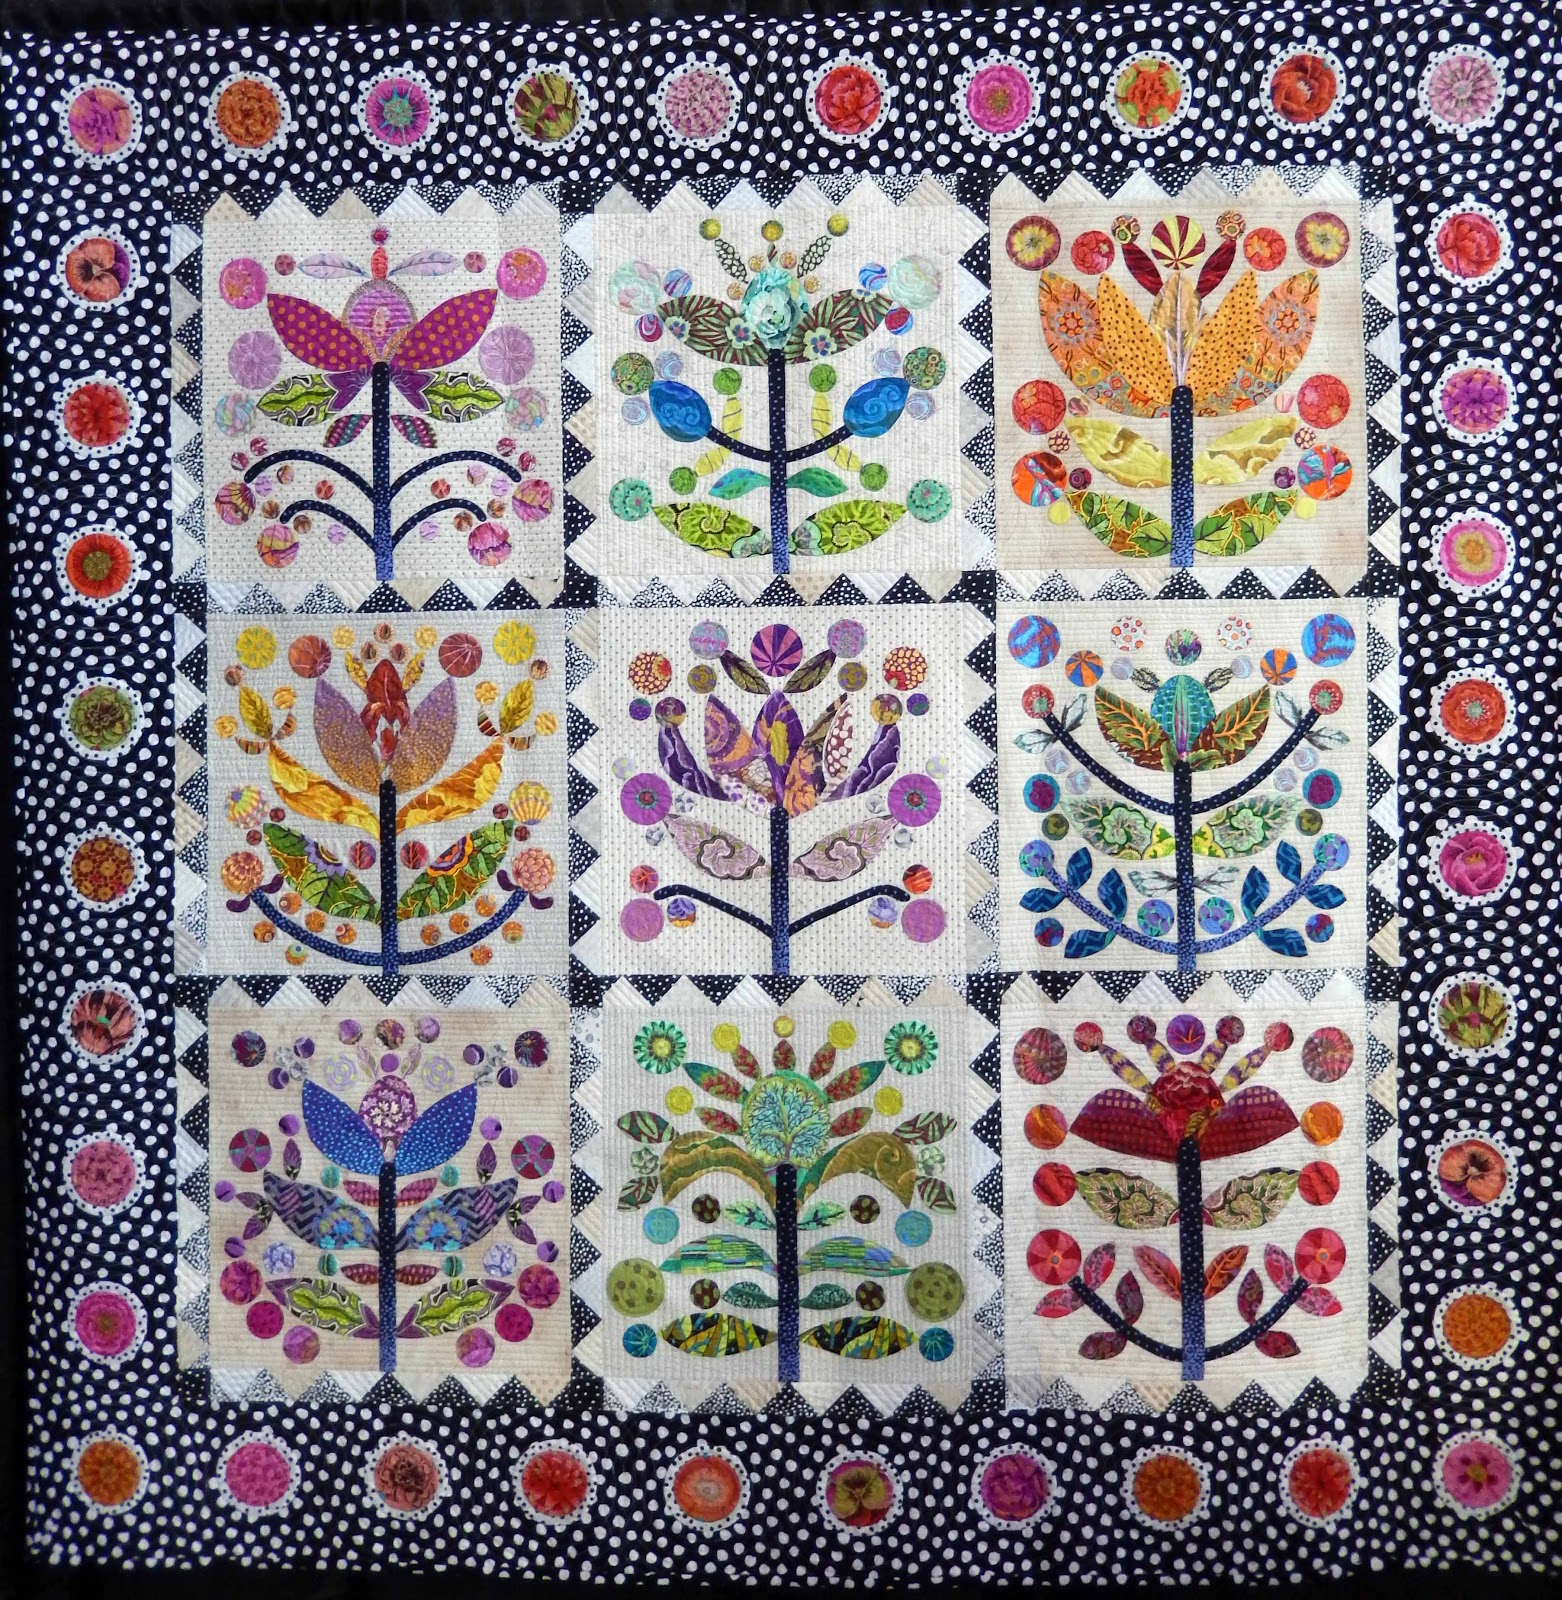 Cat Patches: Stitches in Bloom Quilt Show: Part One